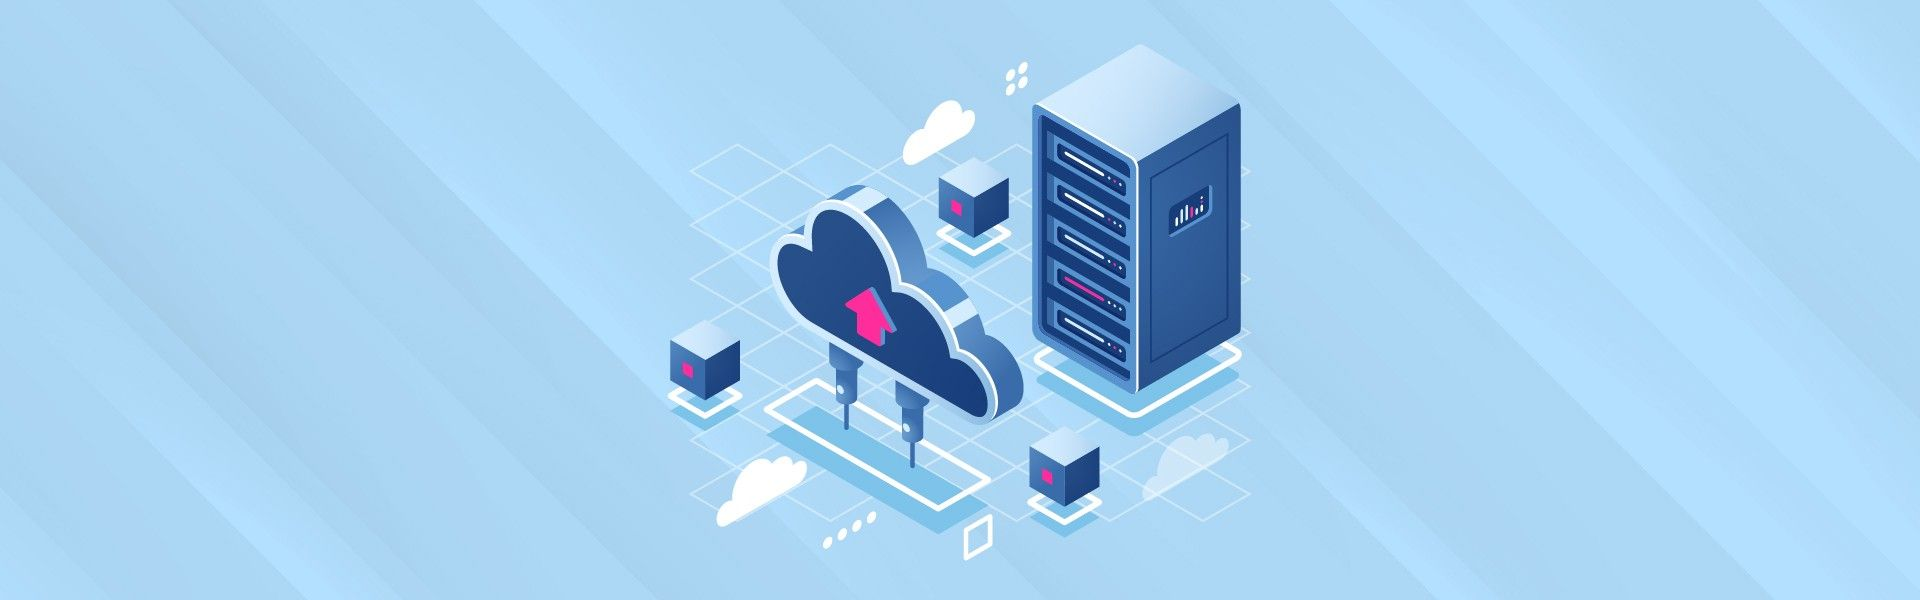 Data Warehouse: What Is It and How Does It Relate to Big Data?